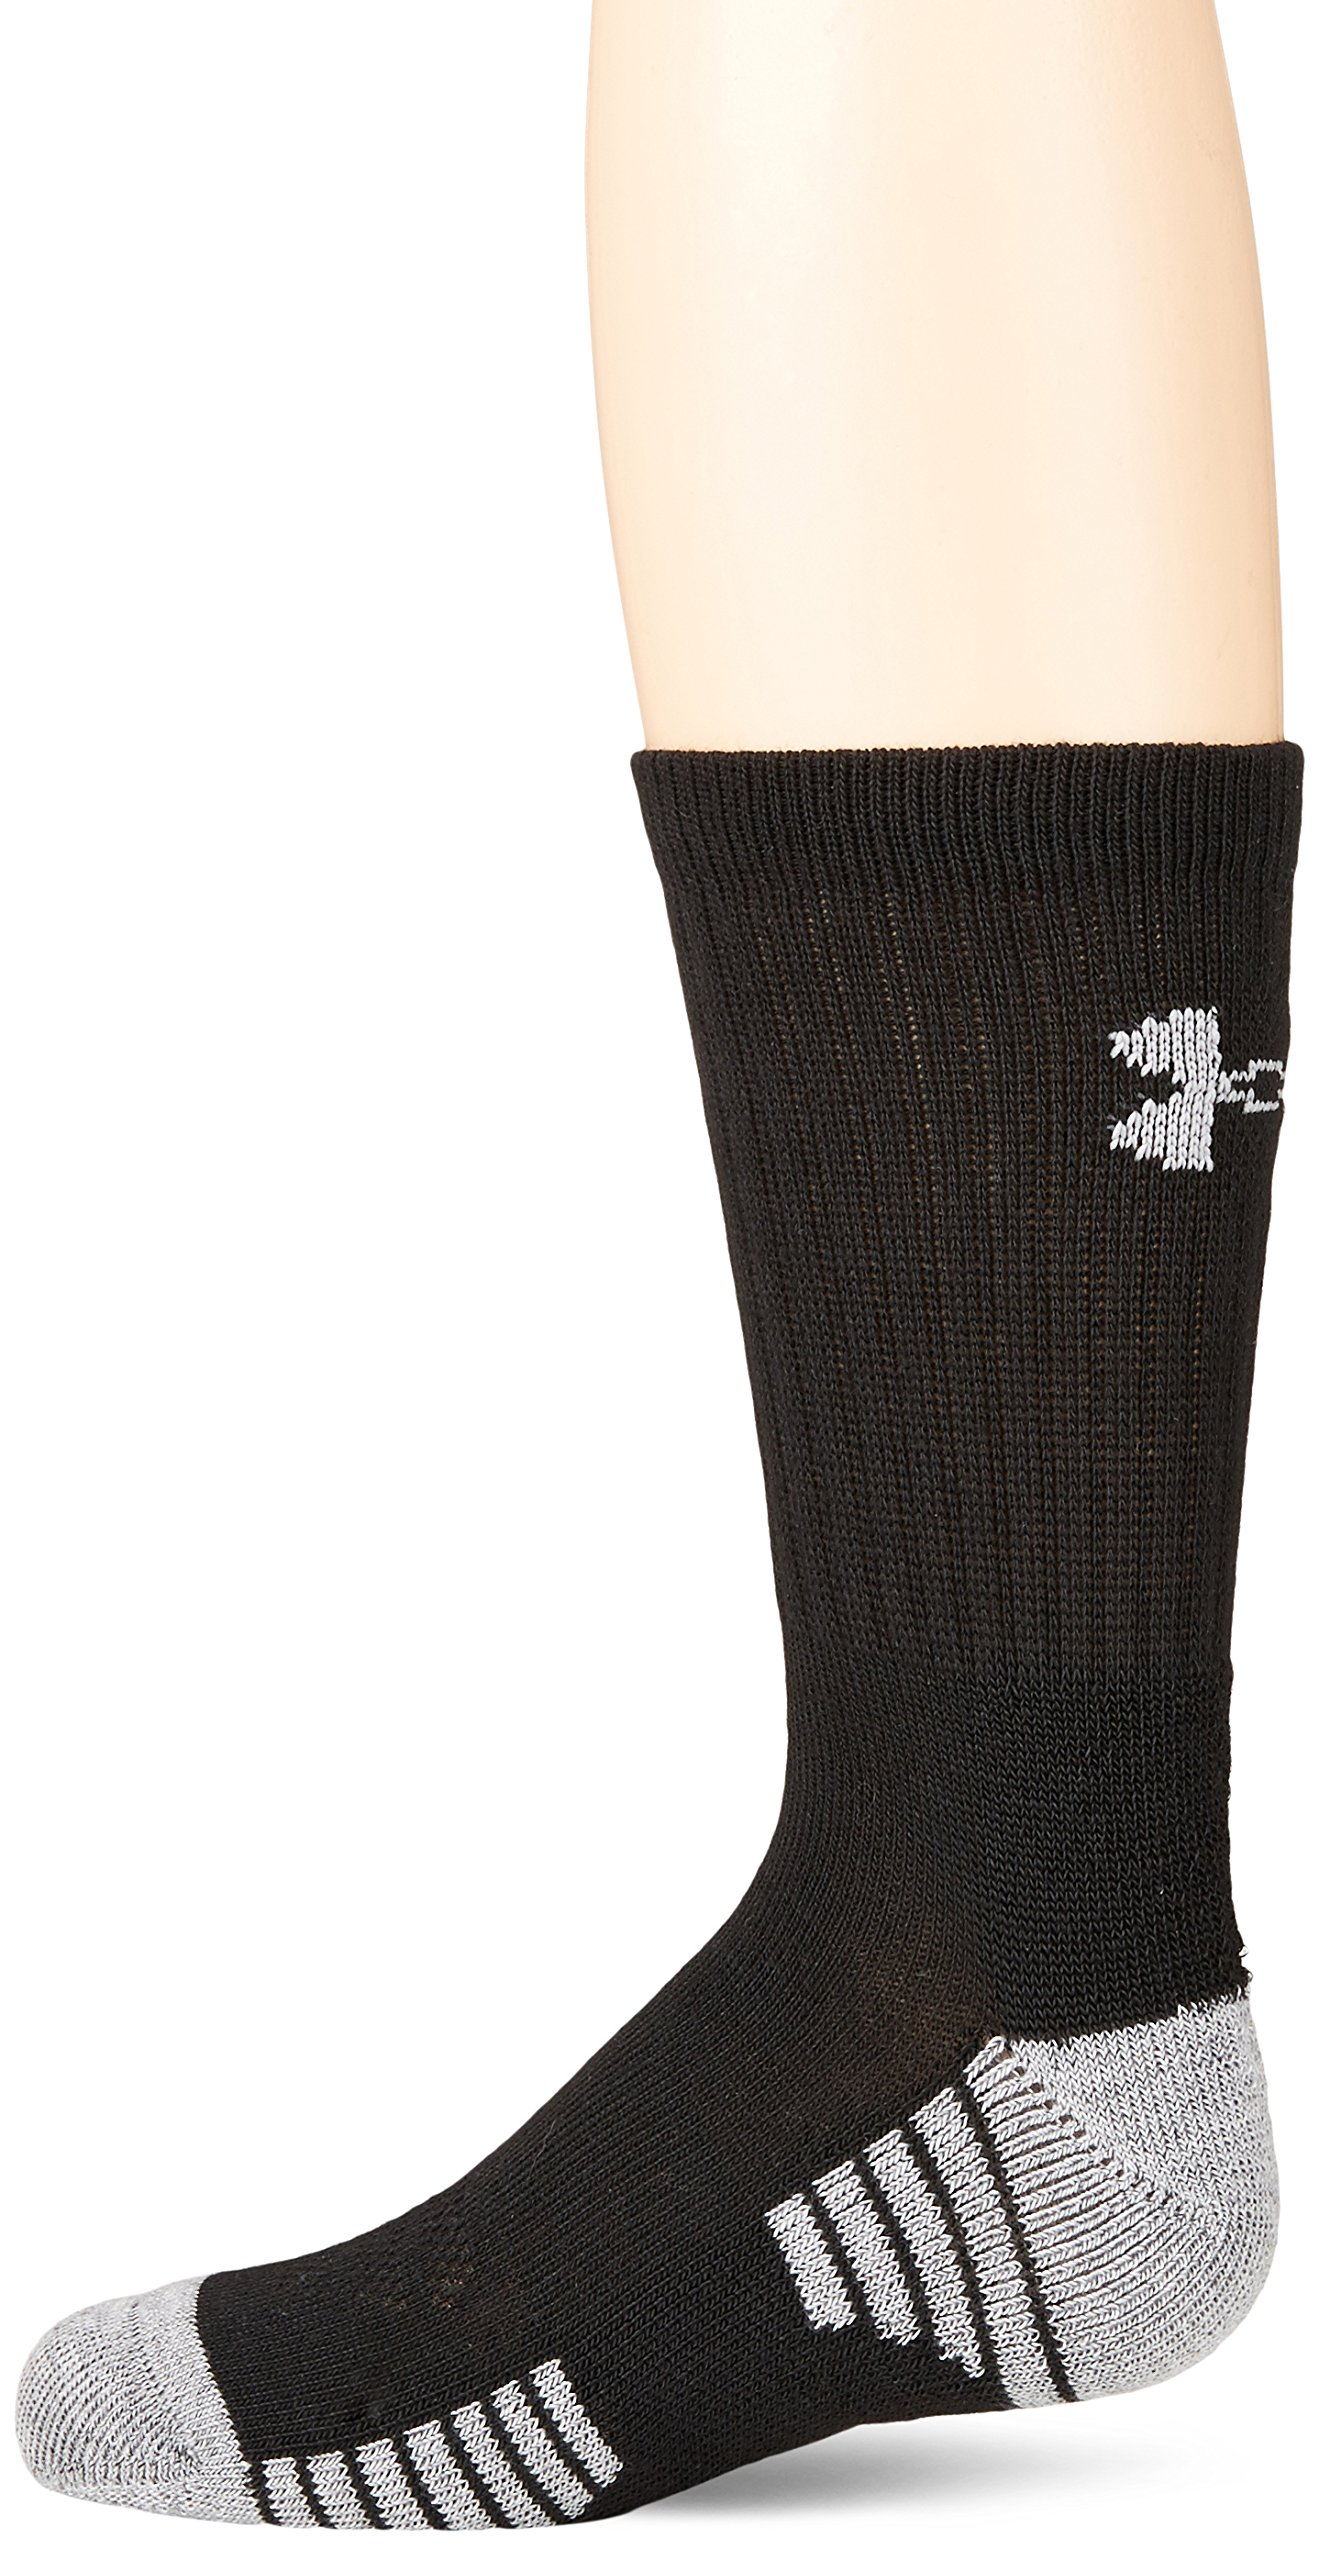 Under Armour Boys Heatgear Tech Crew Socks, Black, Youth Large, 3- Pairs by Under Armour